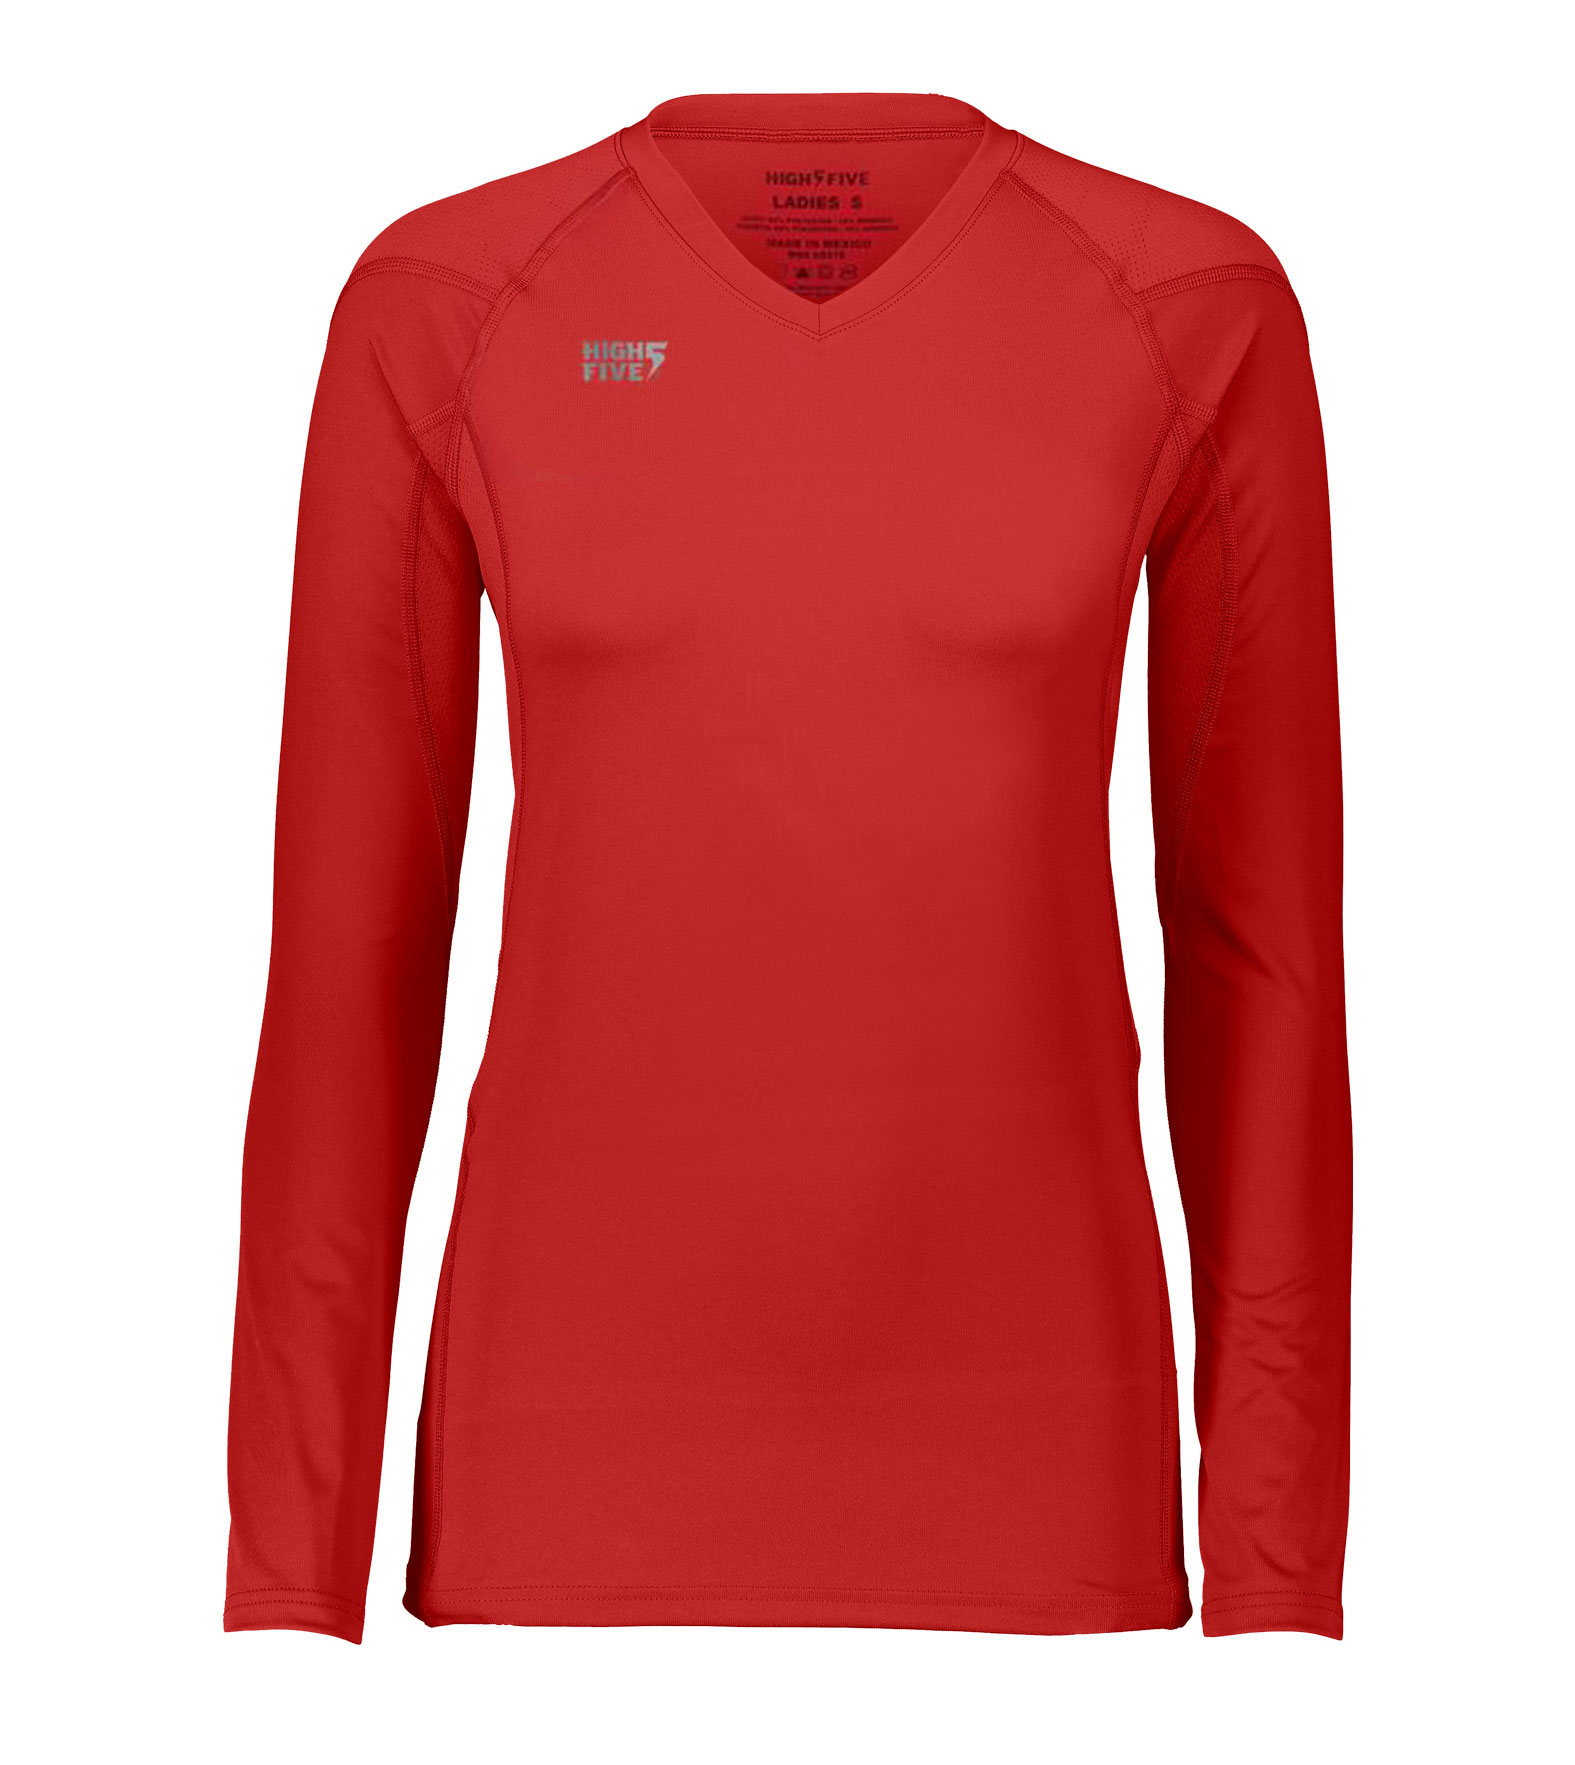 High Five Ladies Truhit Long Sleeve Jersey